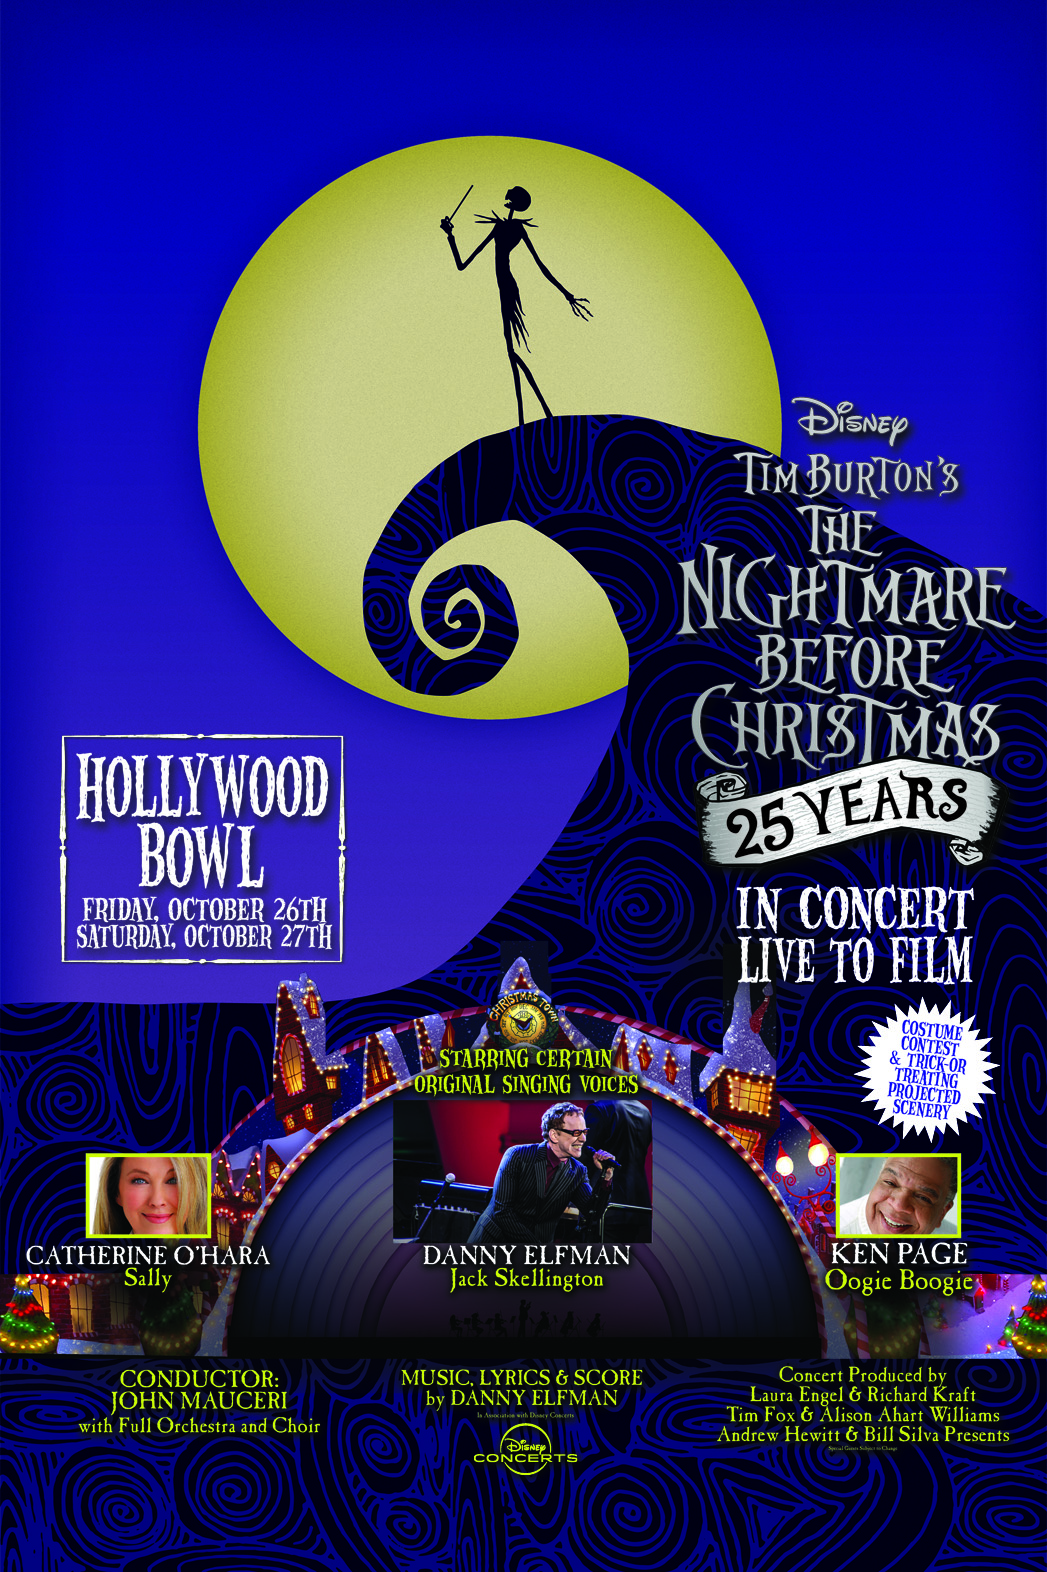 The Nightmare Before Christmas Is Getting A 25th Anniversary Concert ...